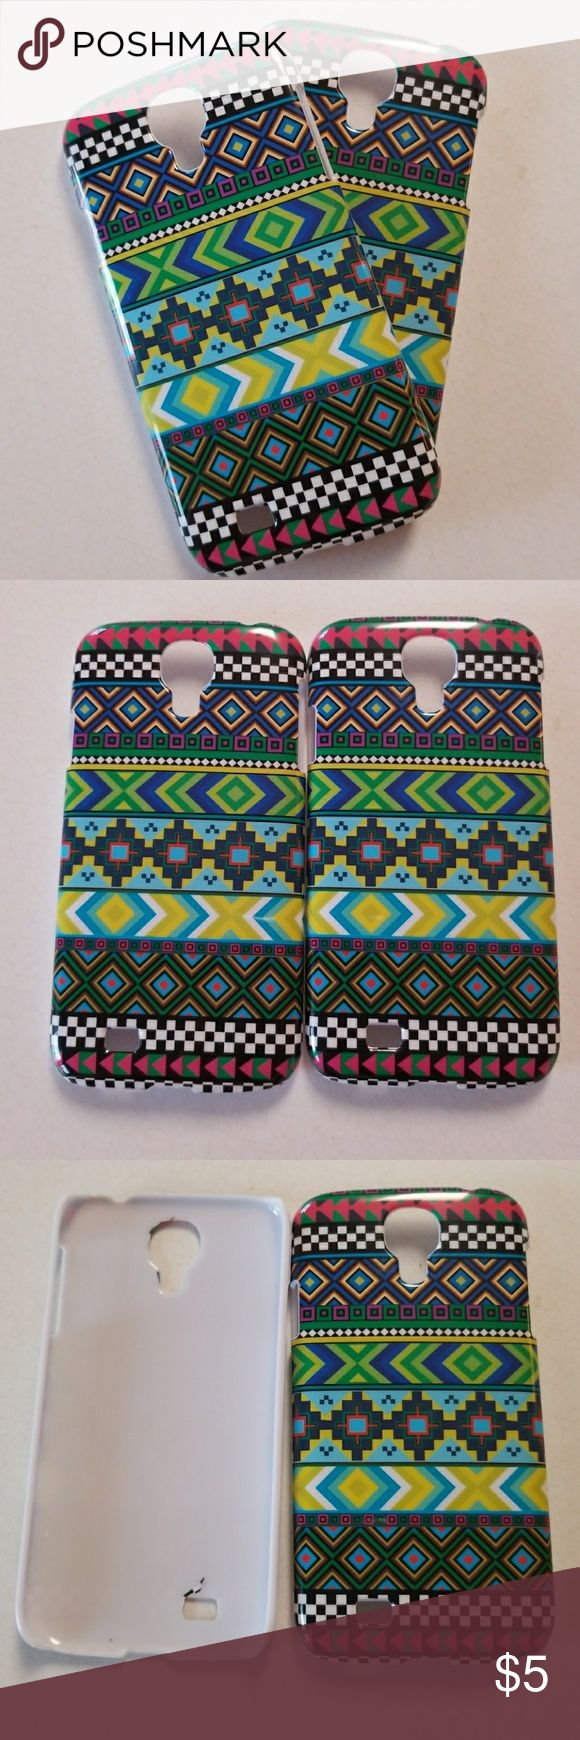 Samsung Galazy S4 Case Tribal print Accessories Phone Cases